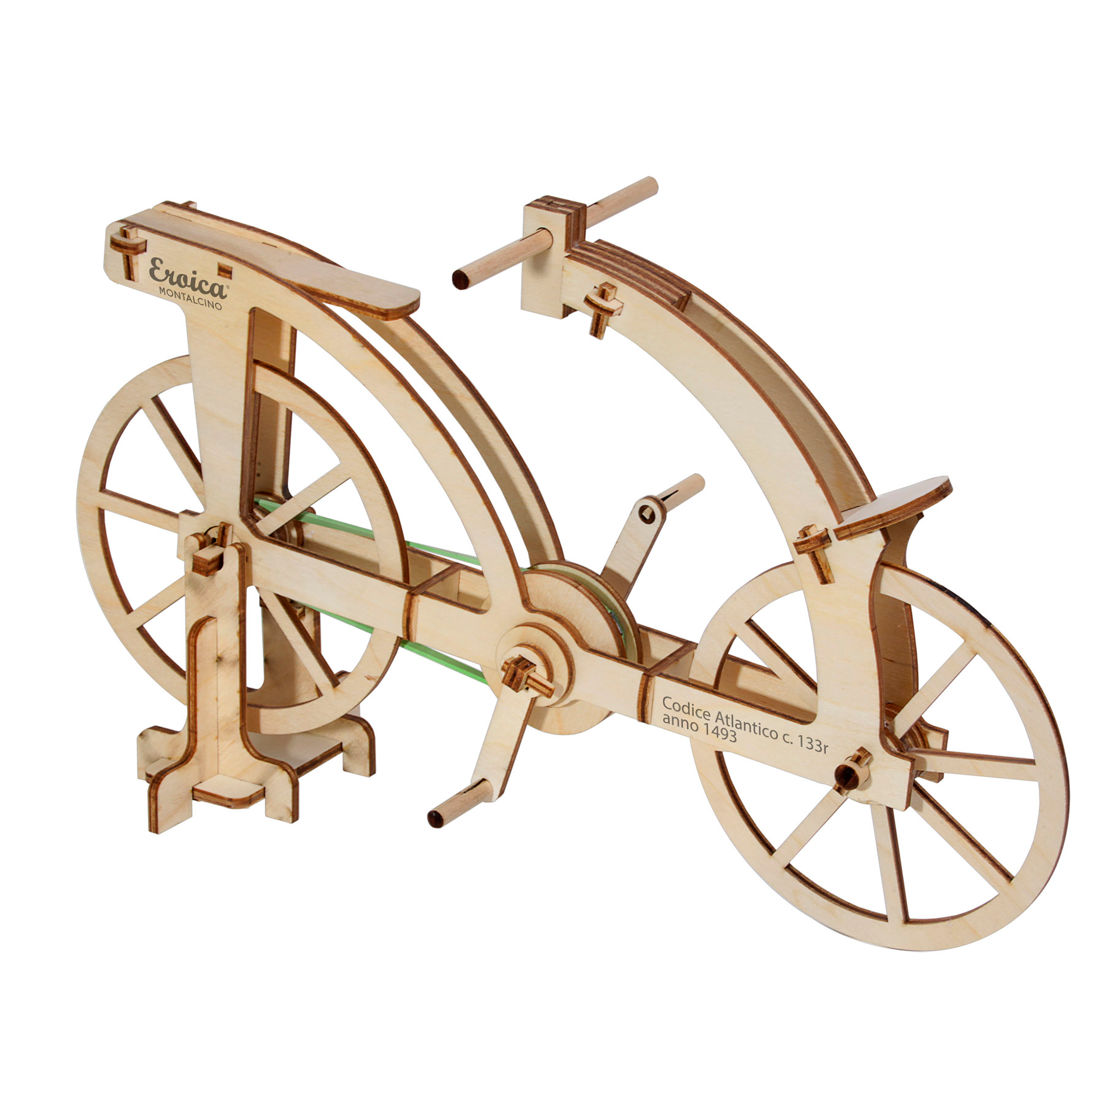 Da Vinci Bicycle Riciclandia Ric04 Laser Cut Wooden Model Kit Made In Italy